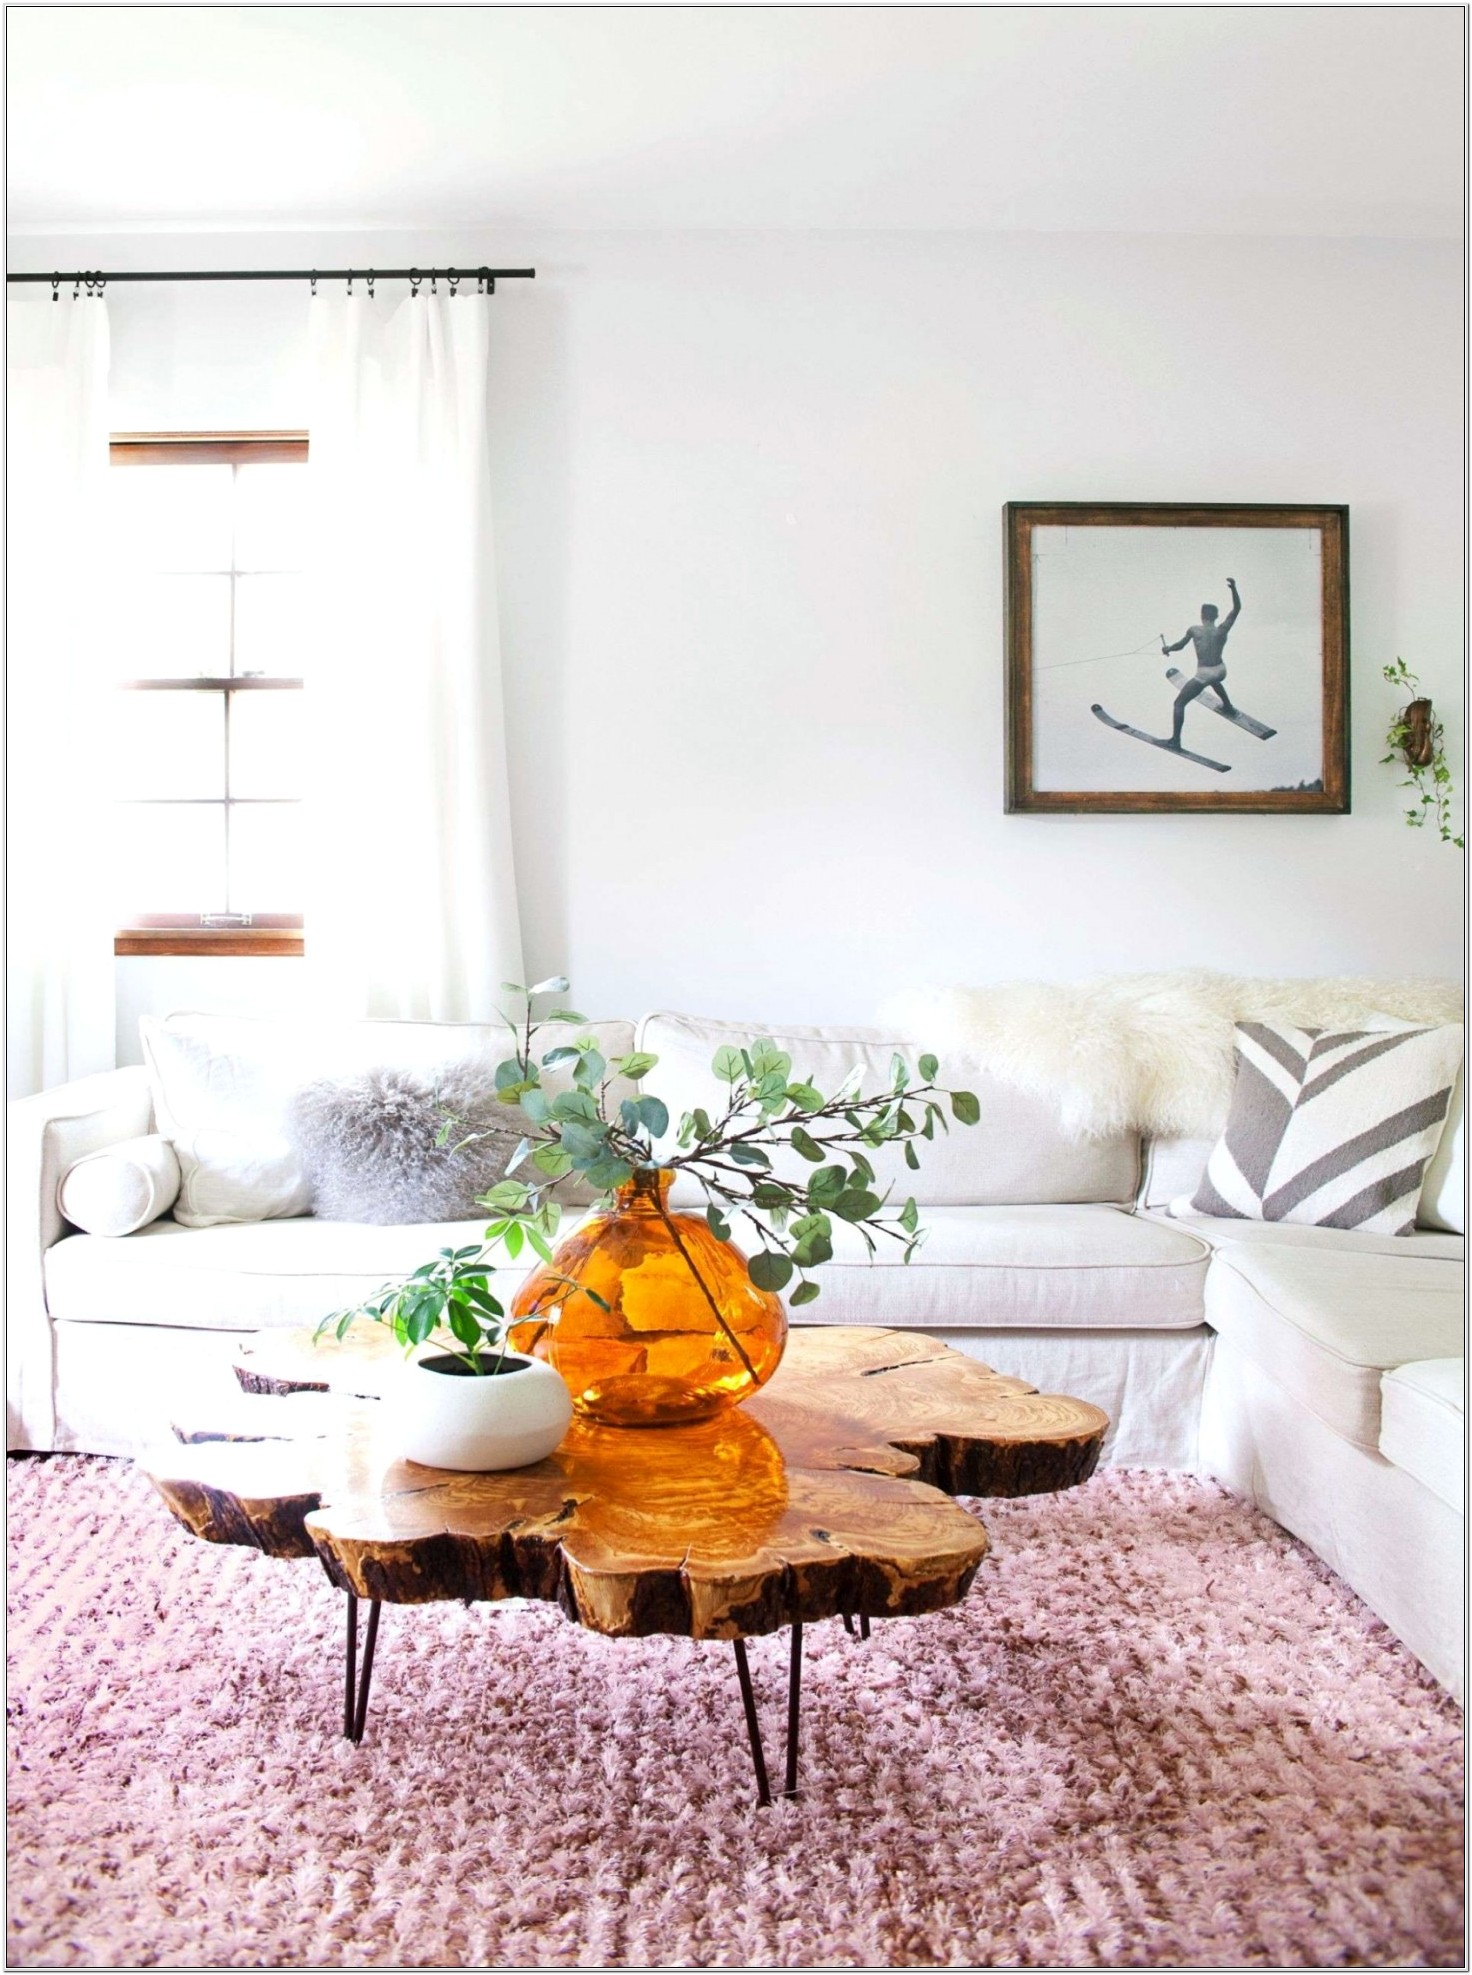 Decorating For Fall 33 Awesome Small Living Room Decorating Ideas For An